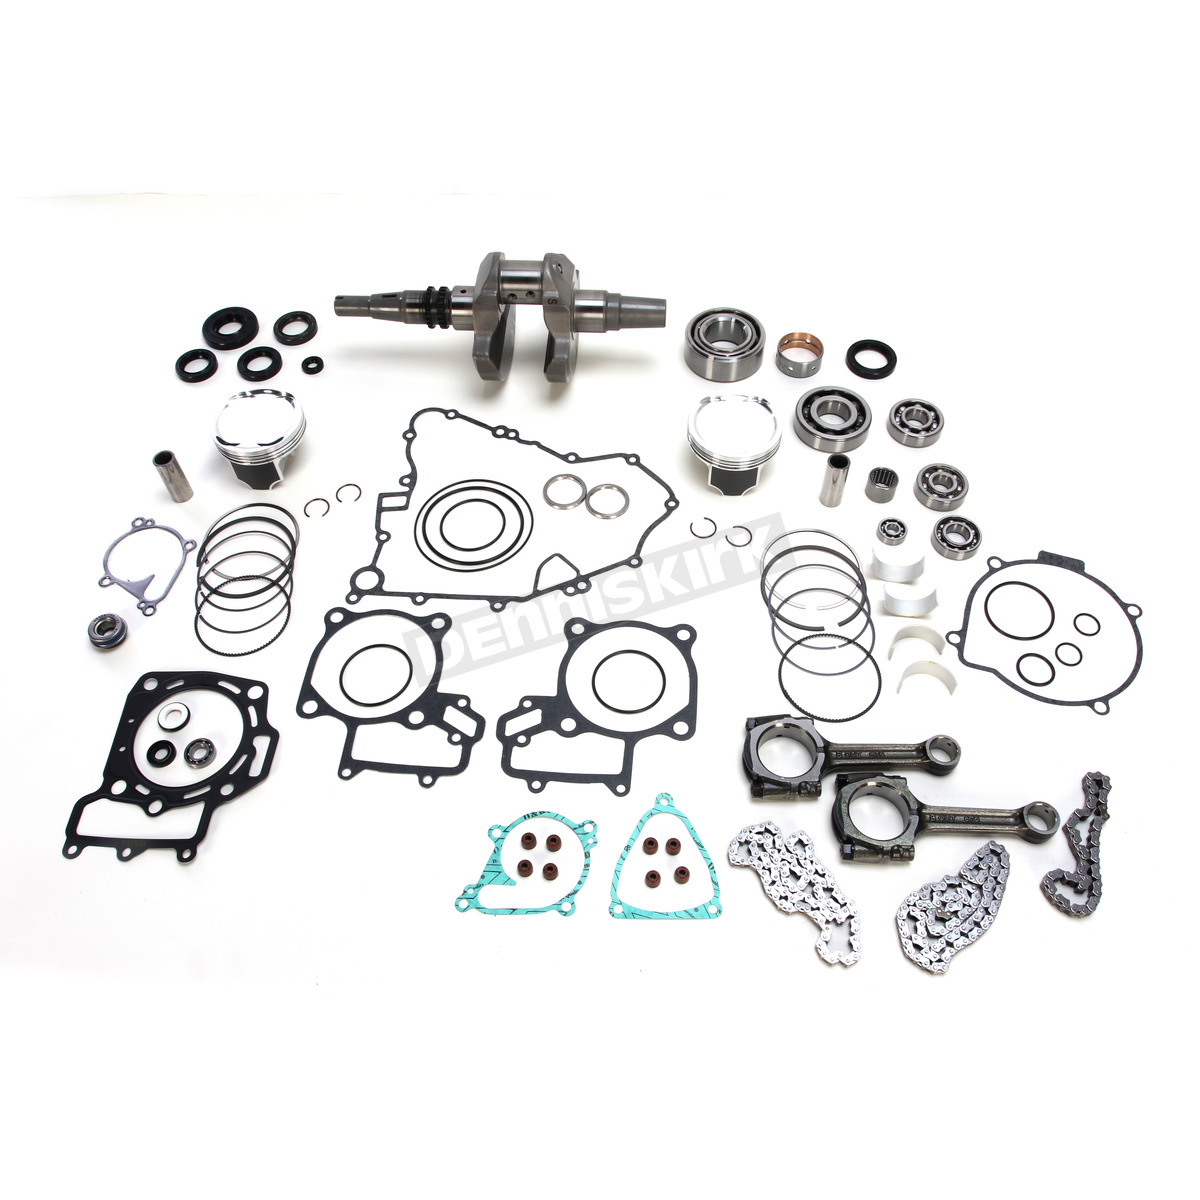 Wrench Rabbit Complete Engine Rebuild Kit In A Box 85mm